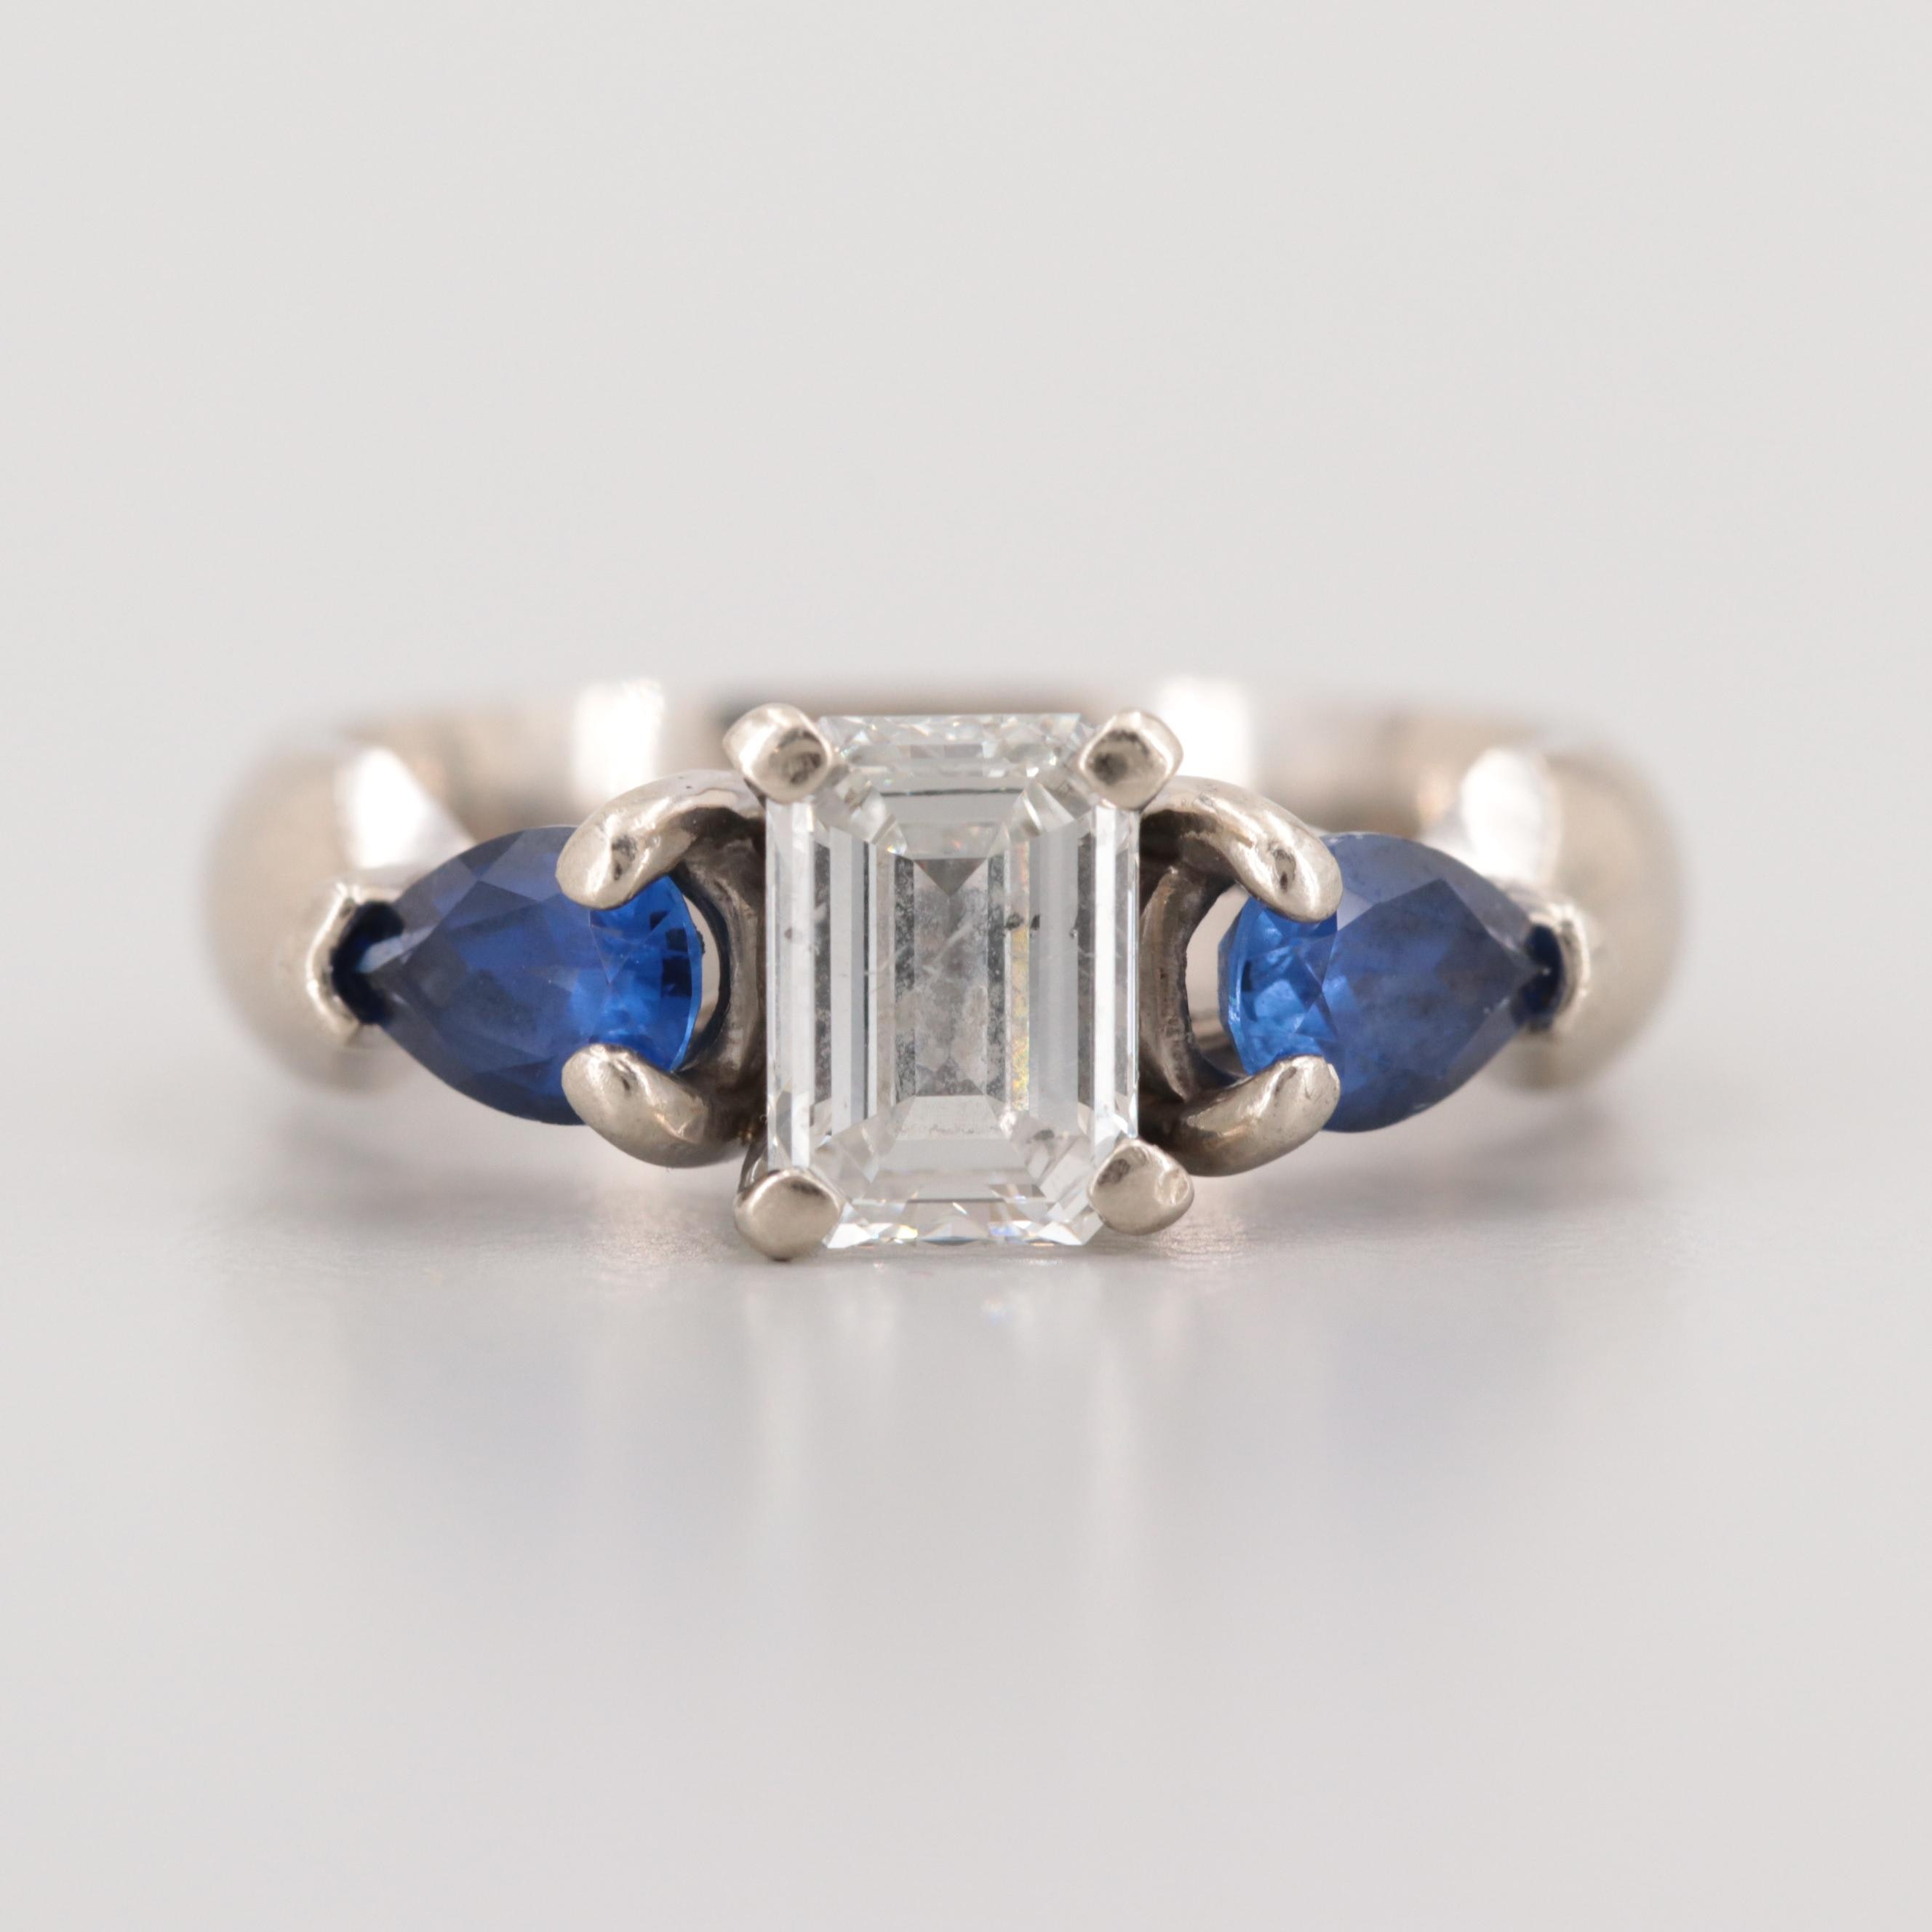 14K White Gold 1.05 CT Diamond and Synthetic Blue Sapphire Ring